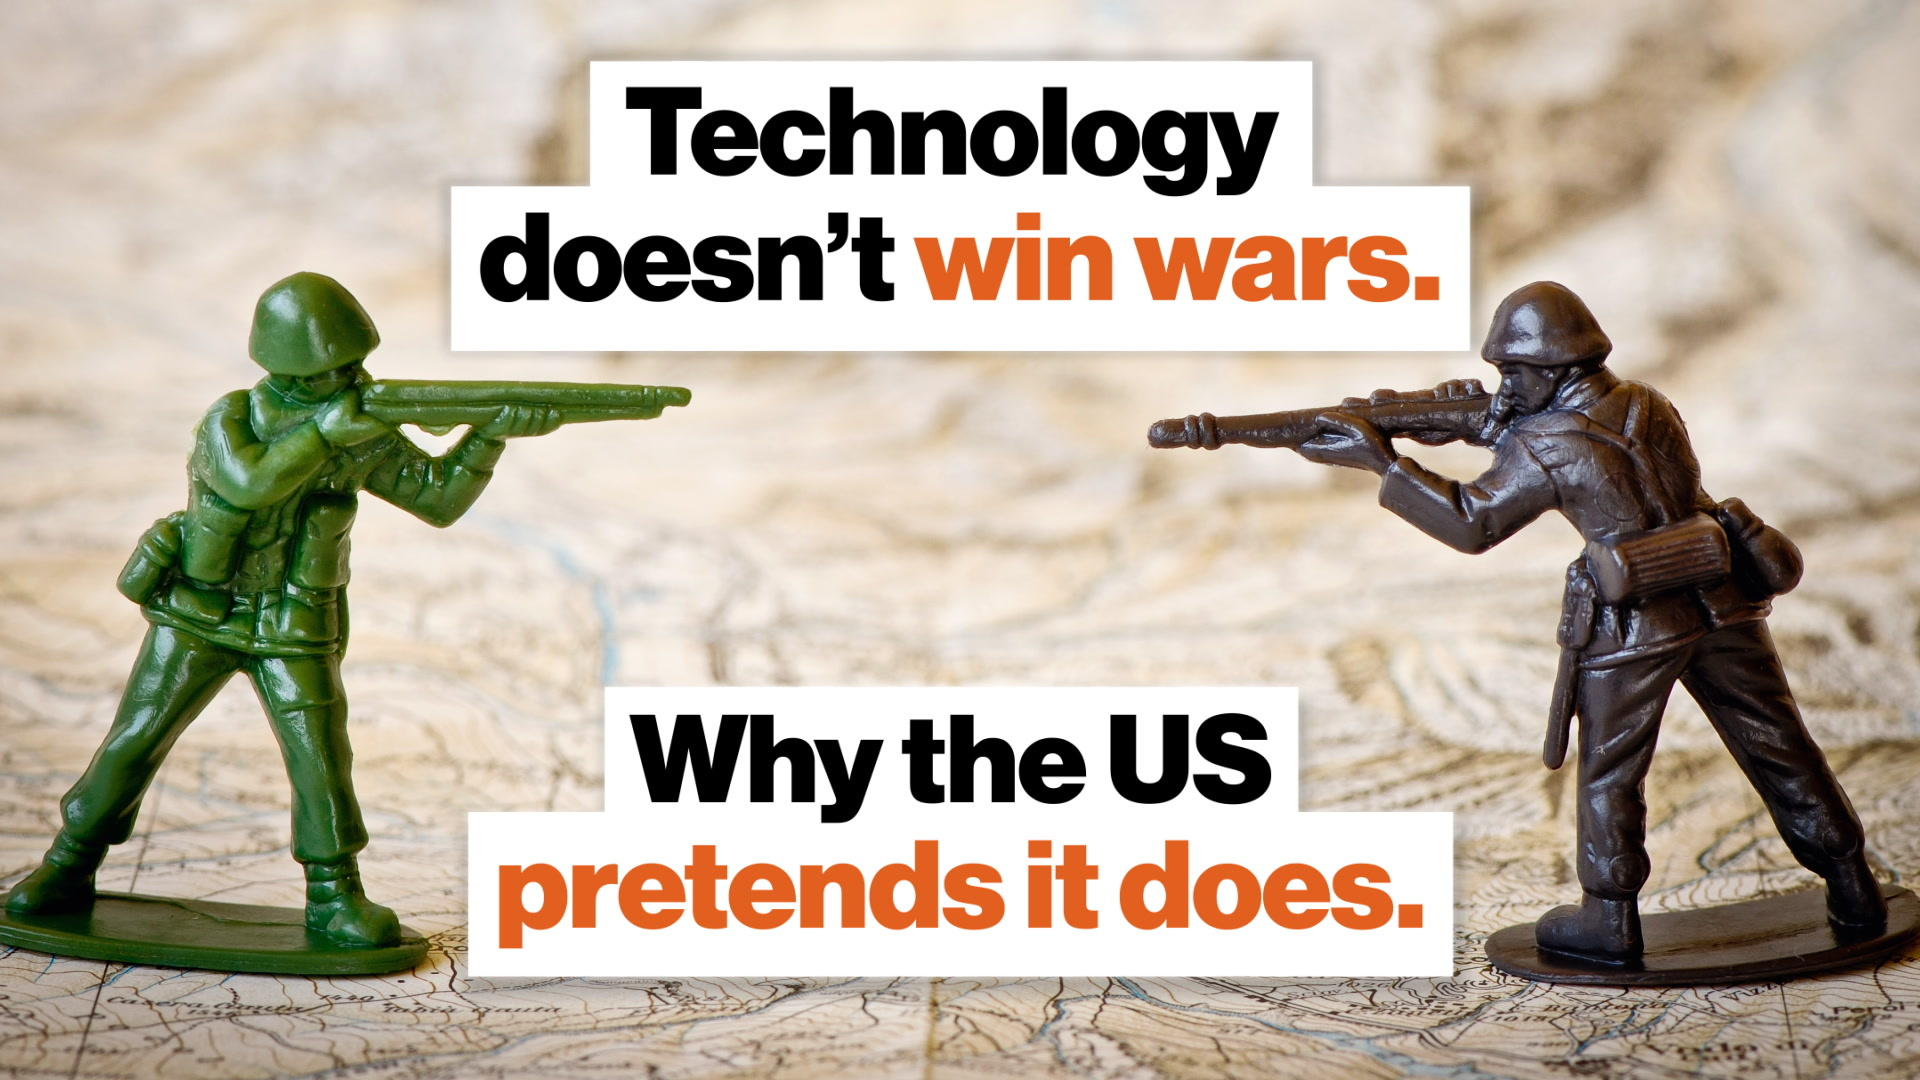 Technology doesn t win wars. Why the US pretends it does.